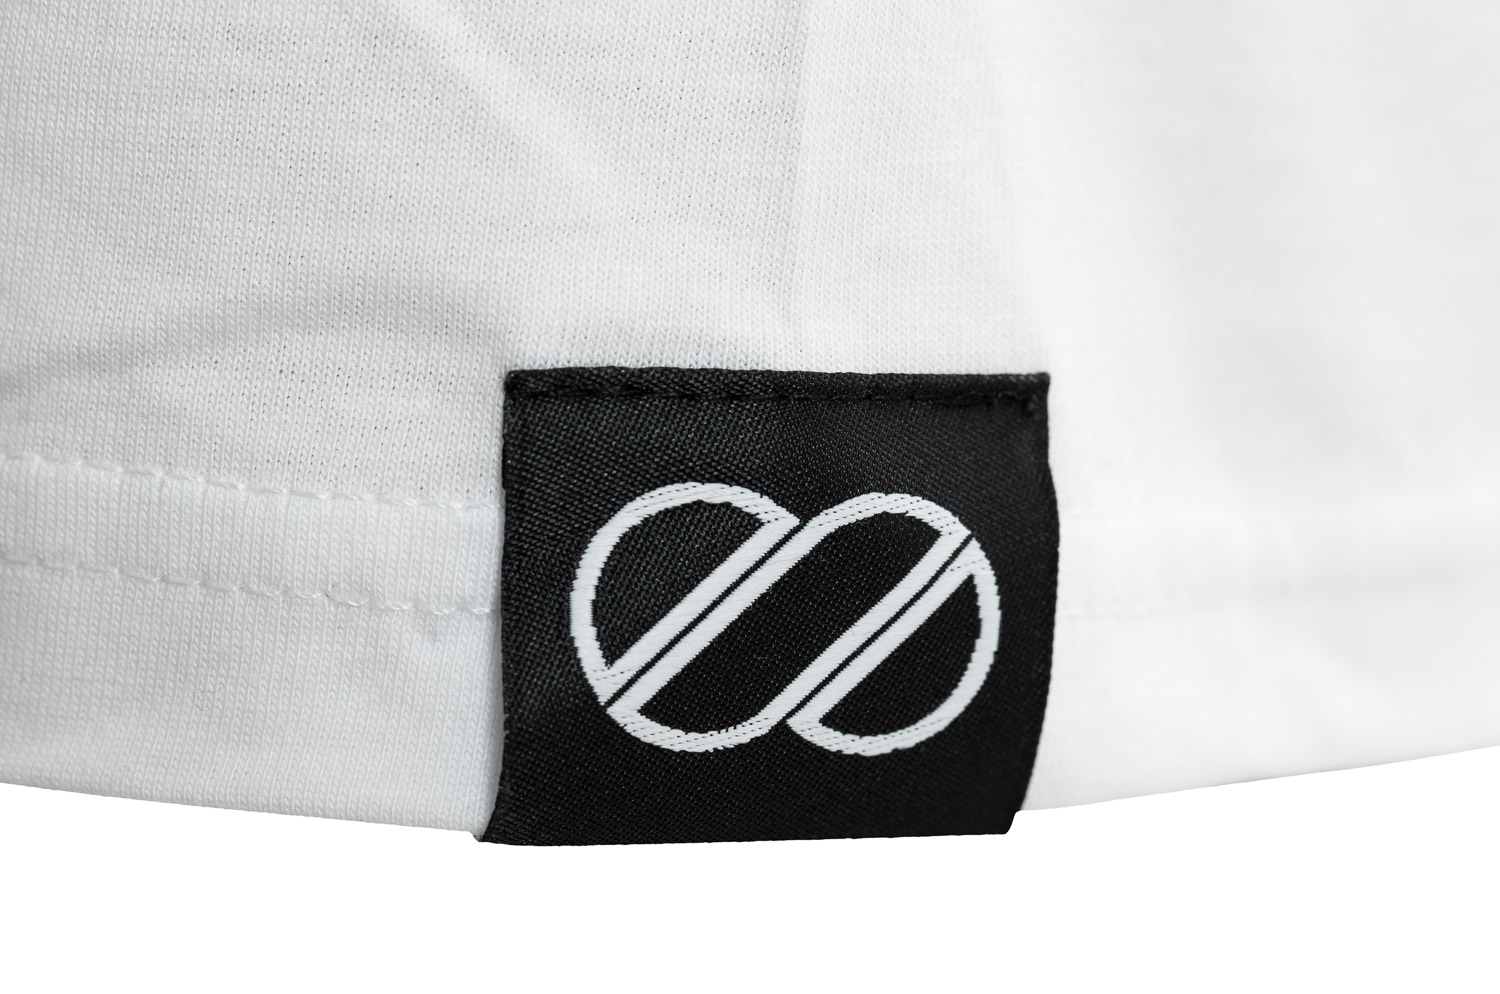 8bar-tshirt-detail-white